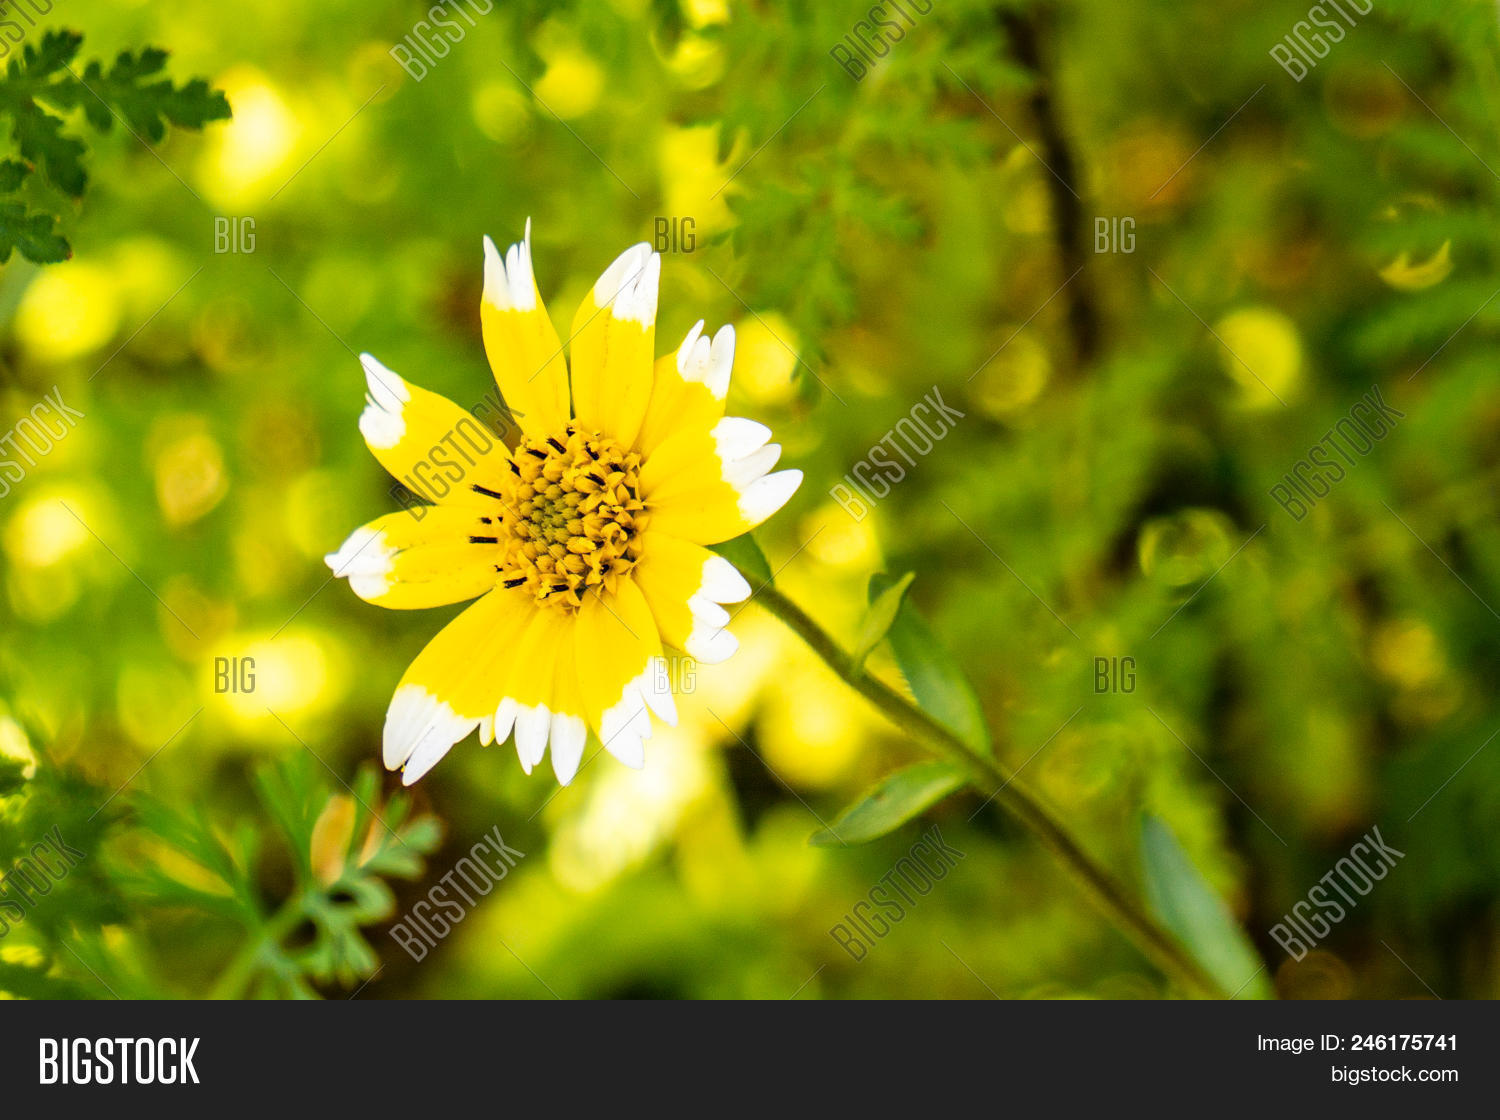 Yellow flower white image photo free trial bigstock yellow flower with white tips of petals on a green background mightylinksfo